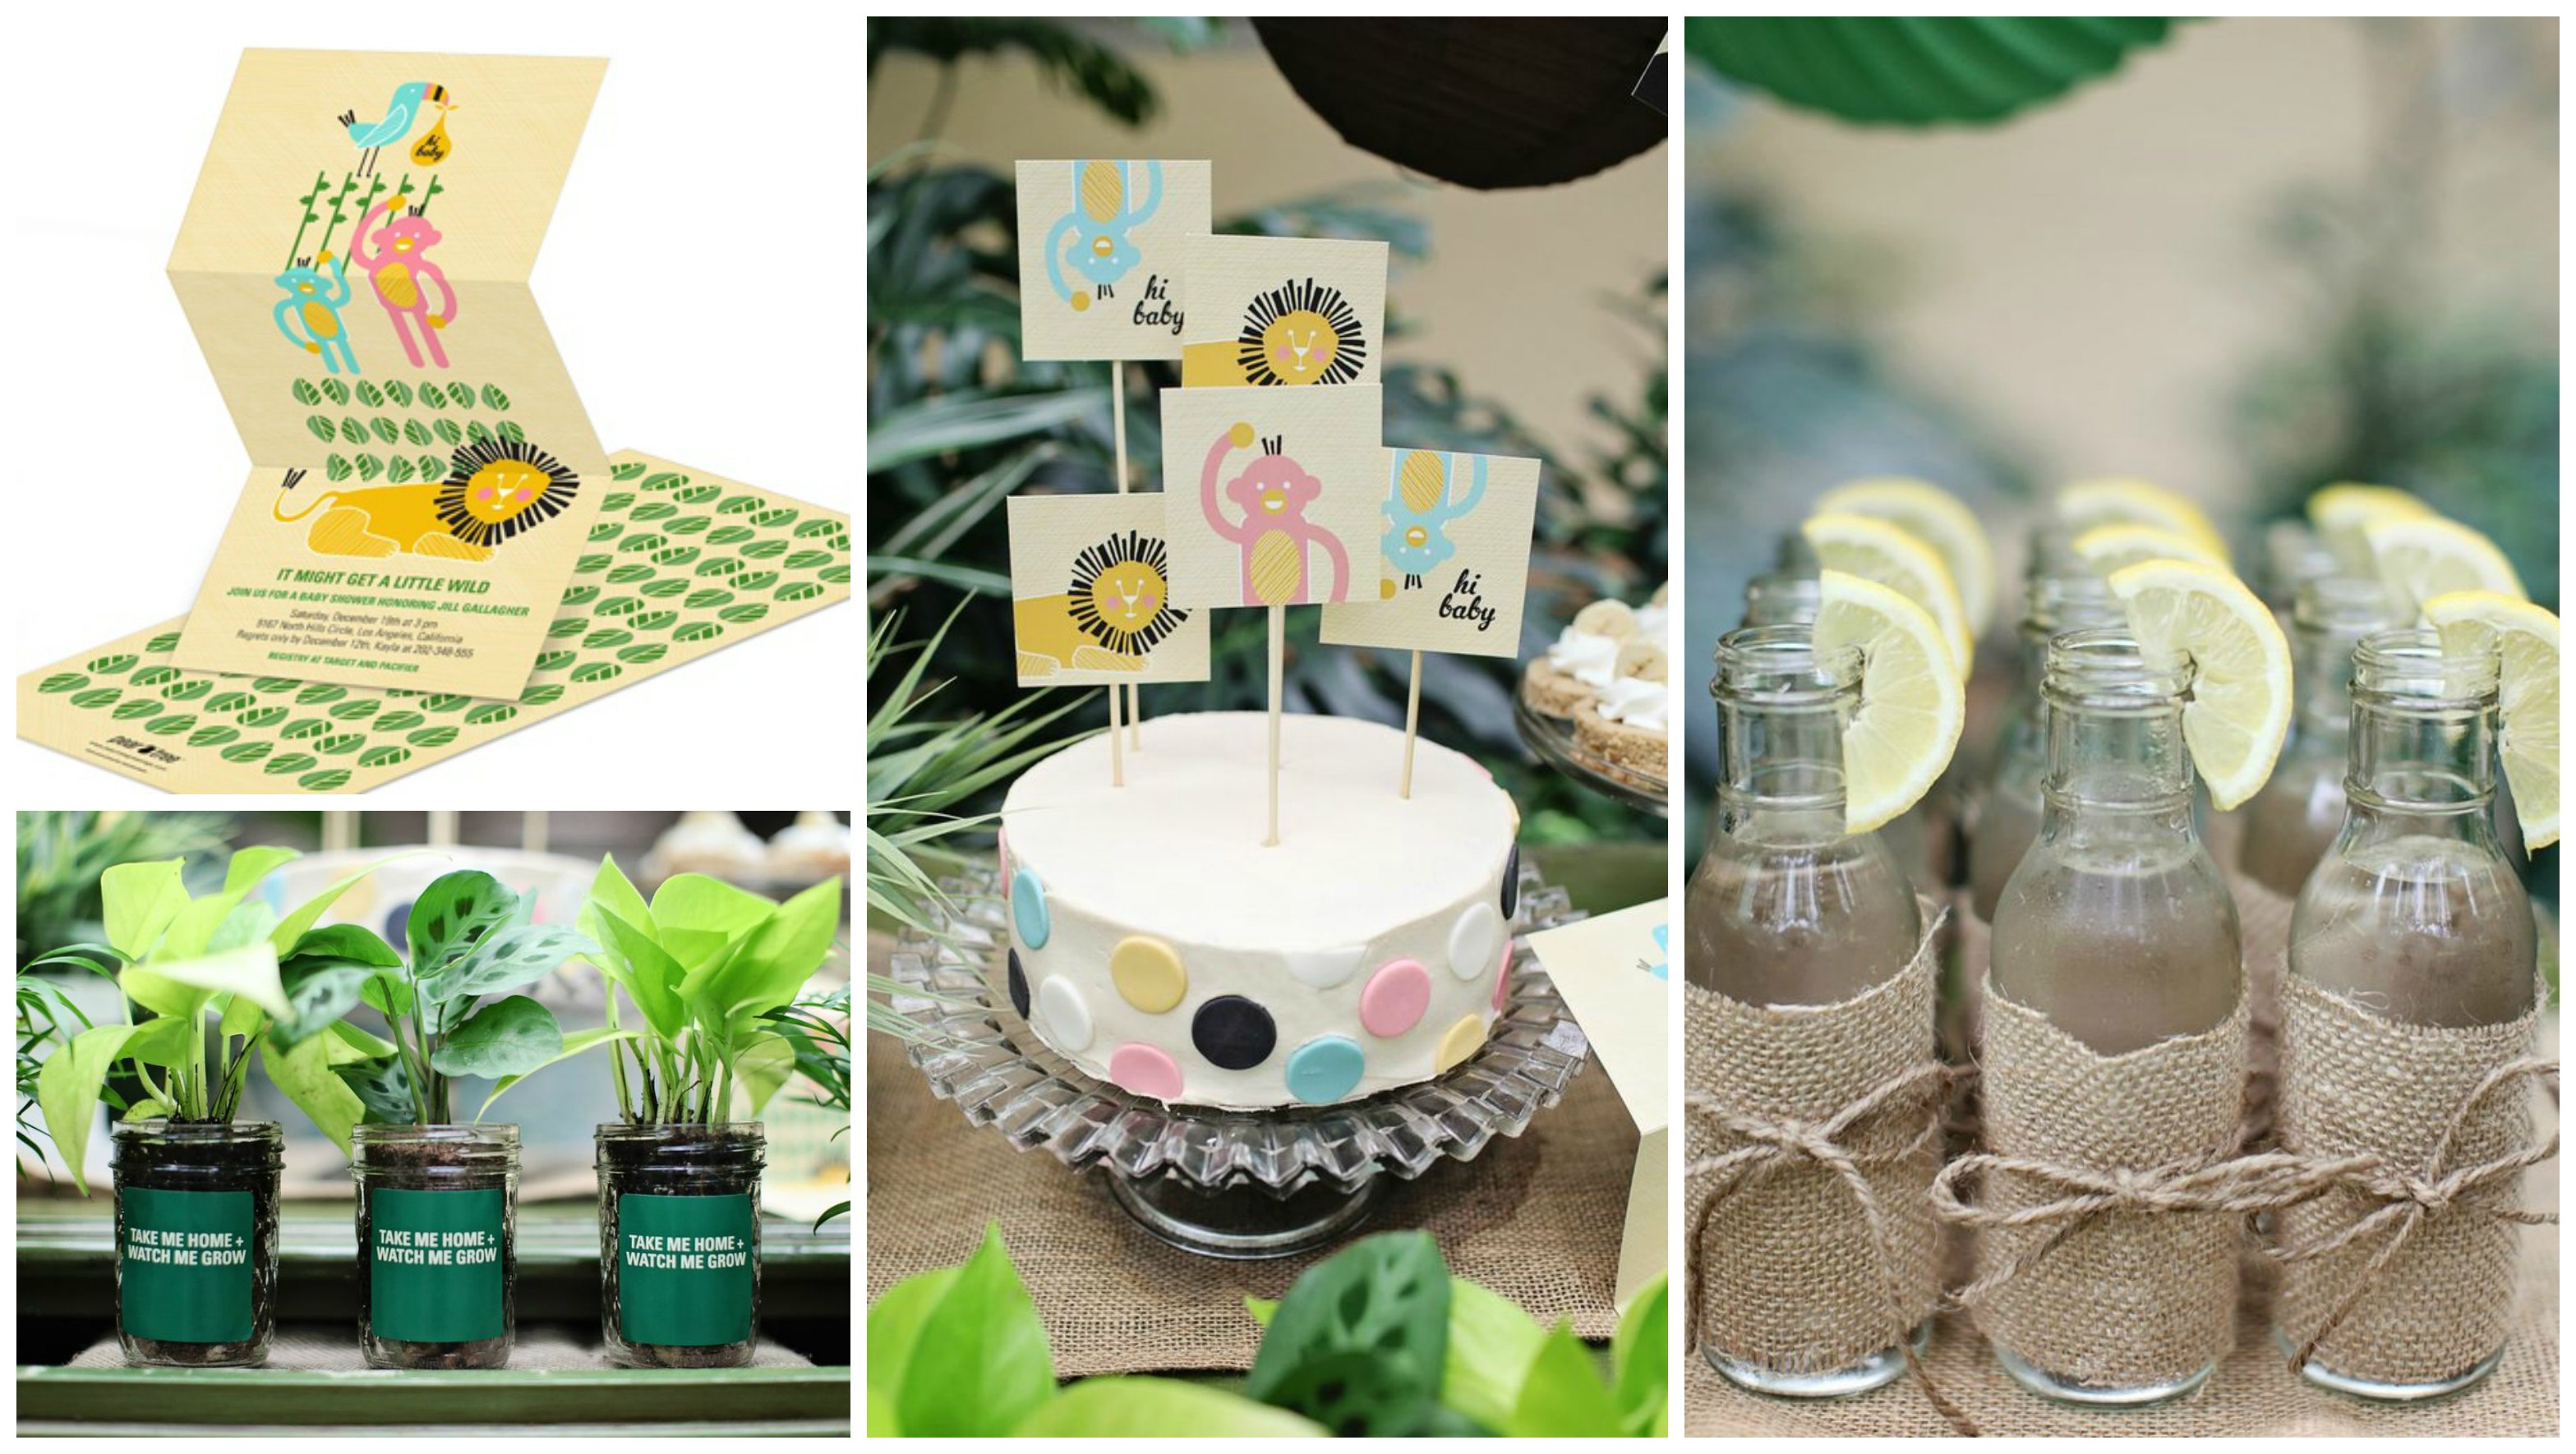 Top 3 baby shower ideas pear tree blog for Baby shower safari decoration